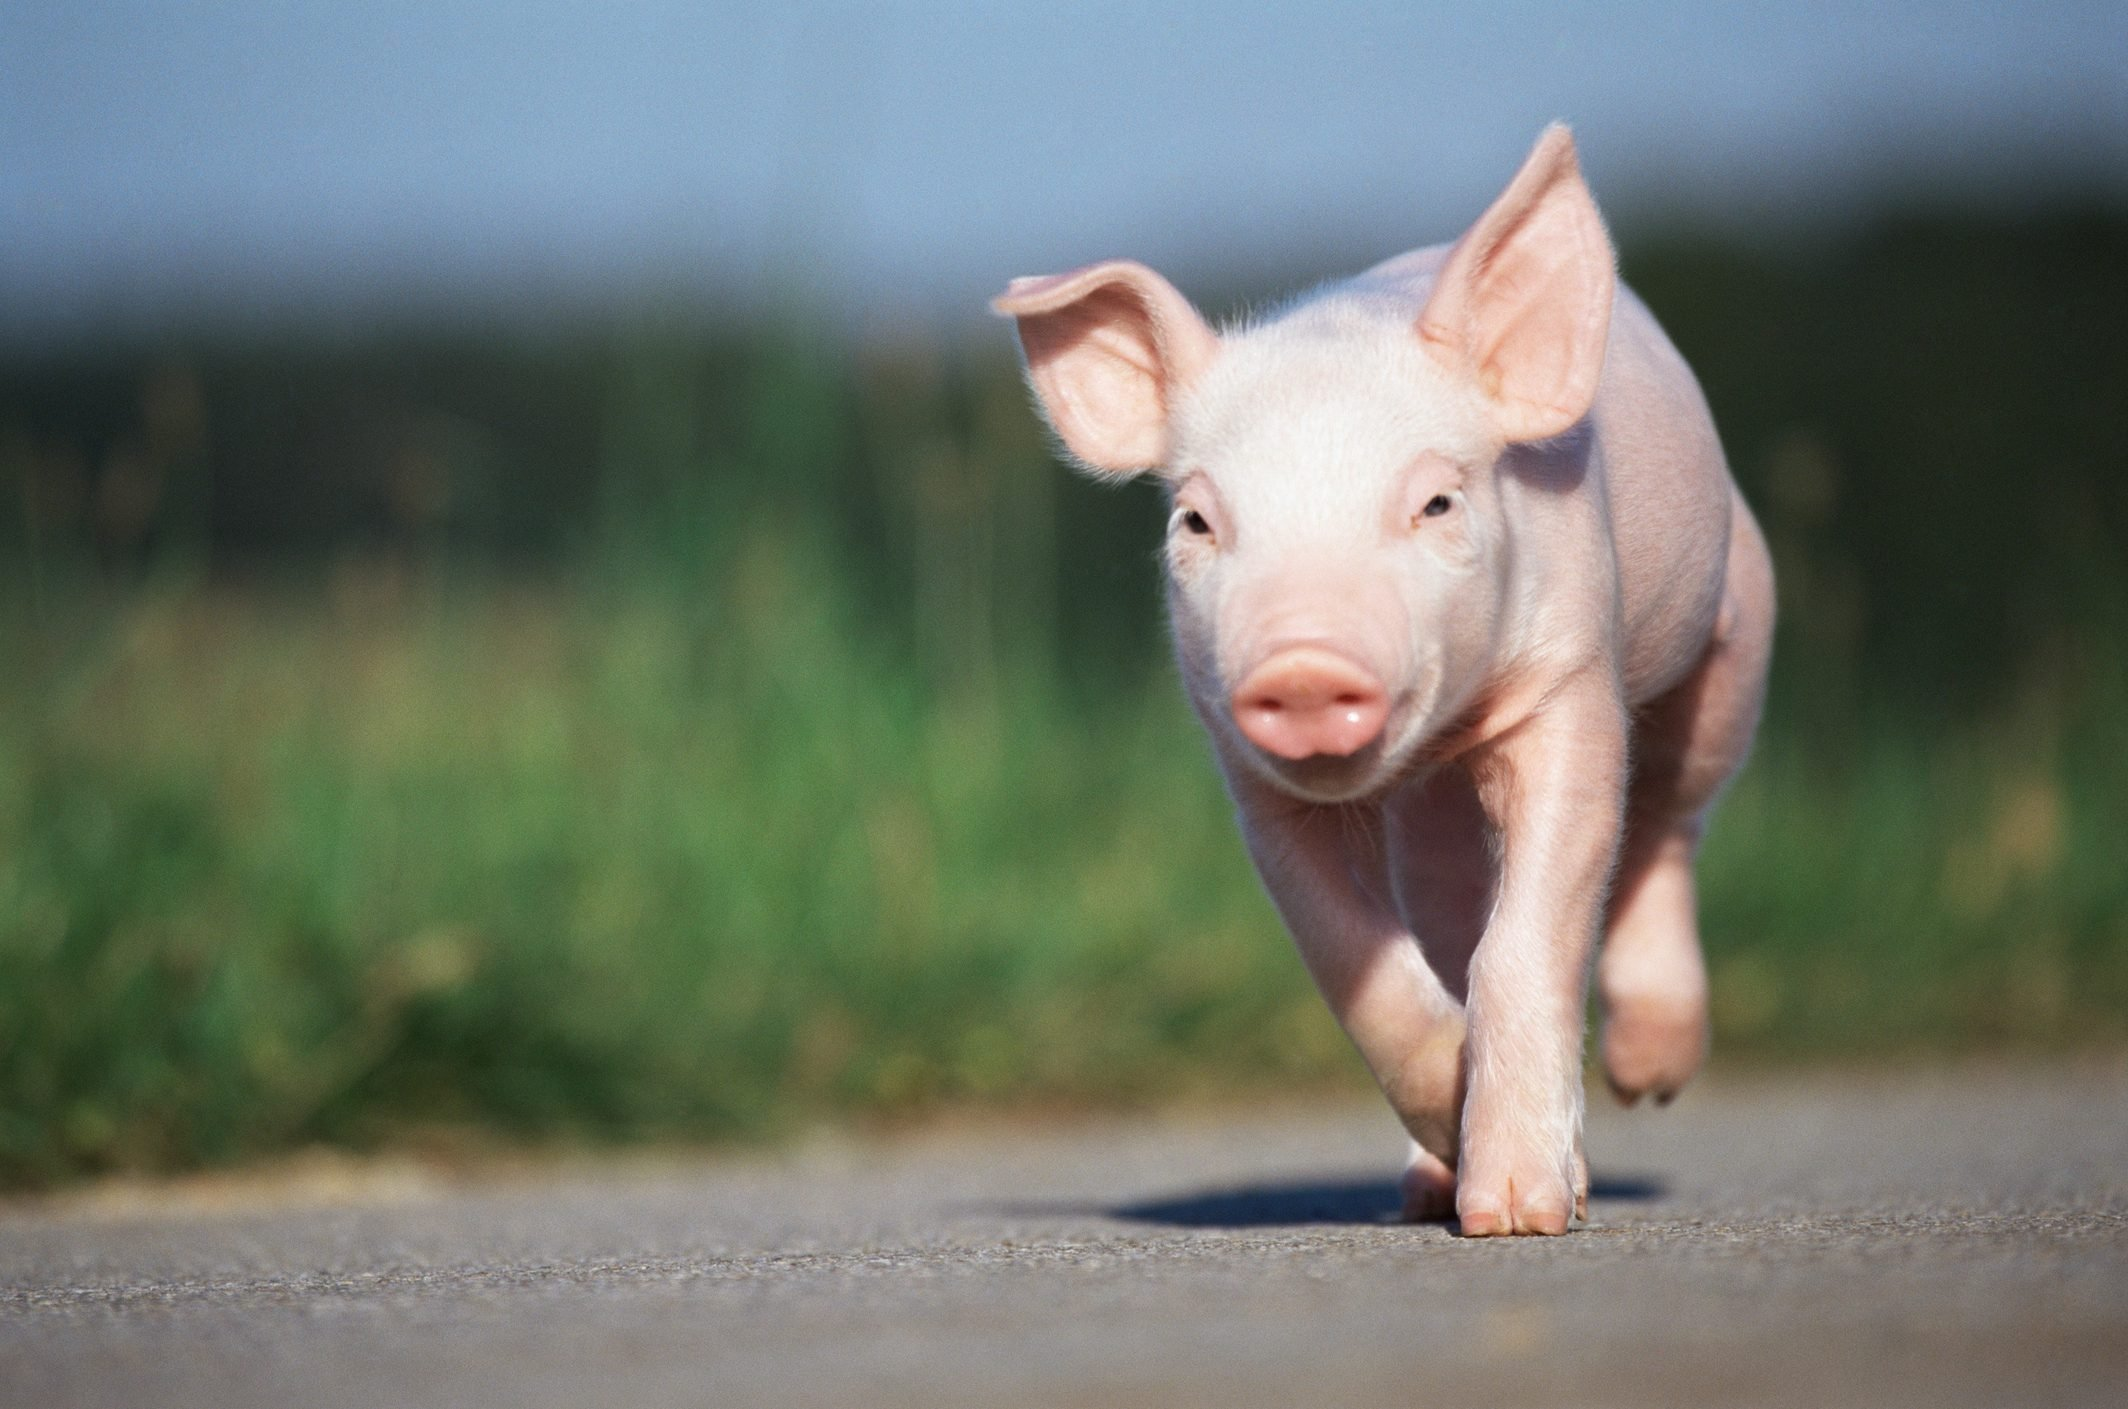 Piglet running along road